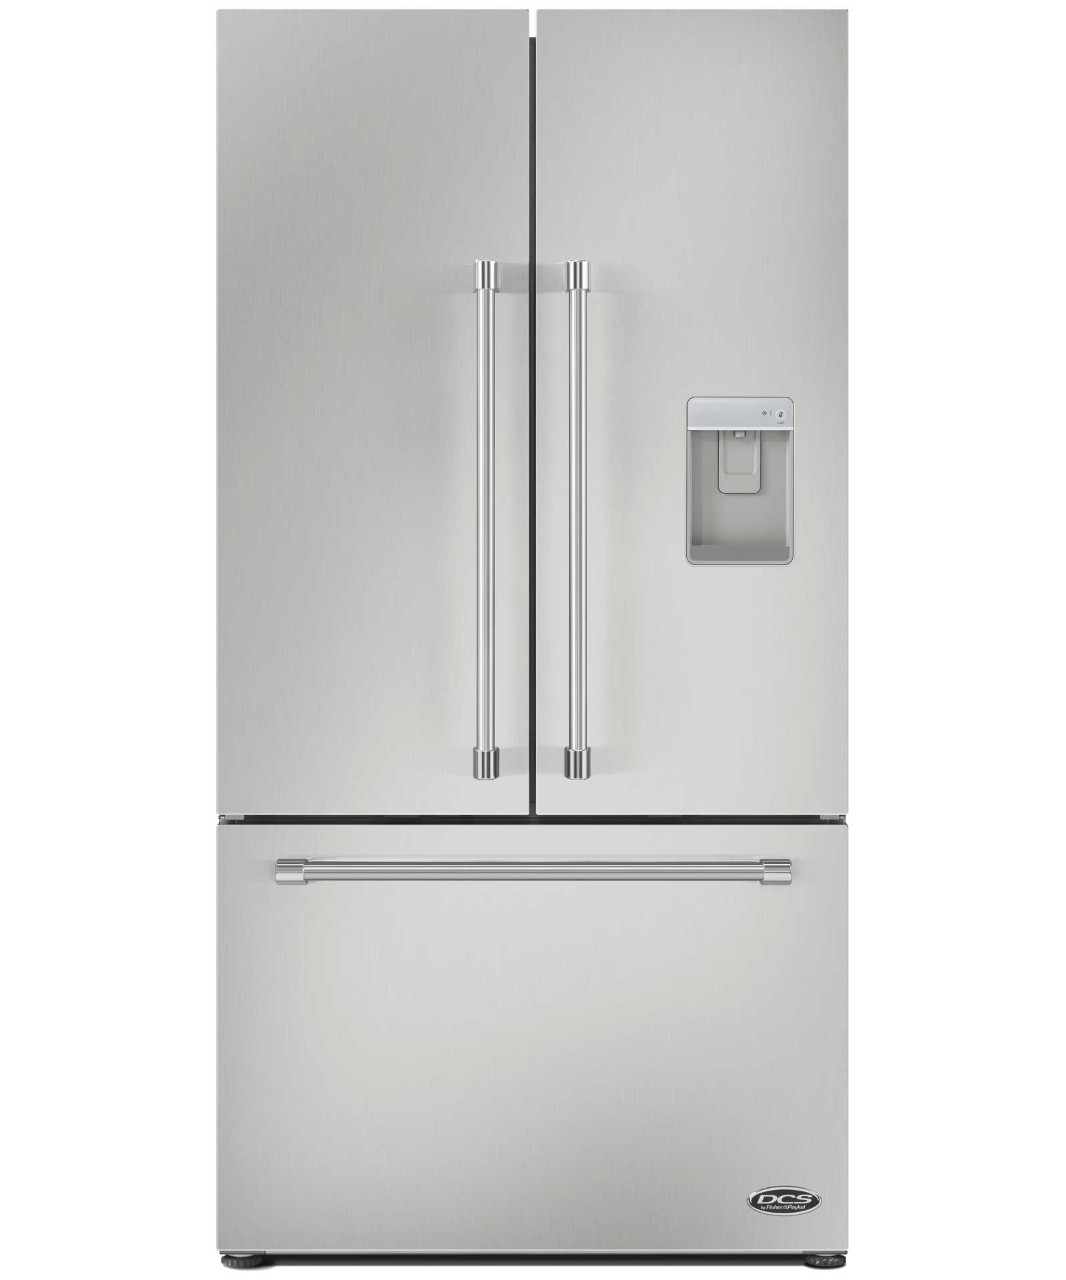 ACTIVESMART FRIDGE - FRENCH DOOR 36